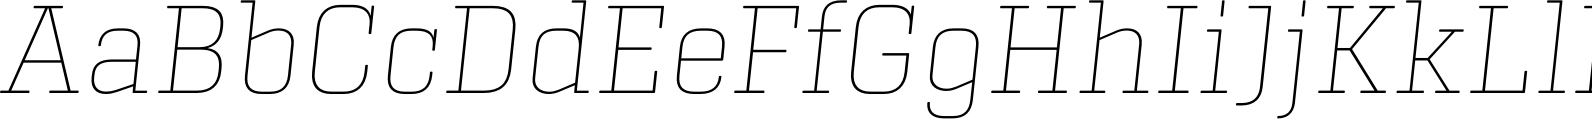 Center Slab Thin Italic Font